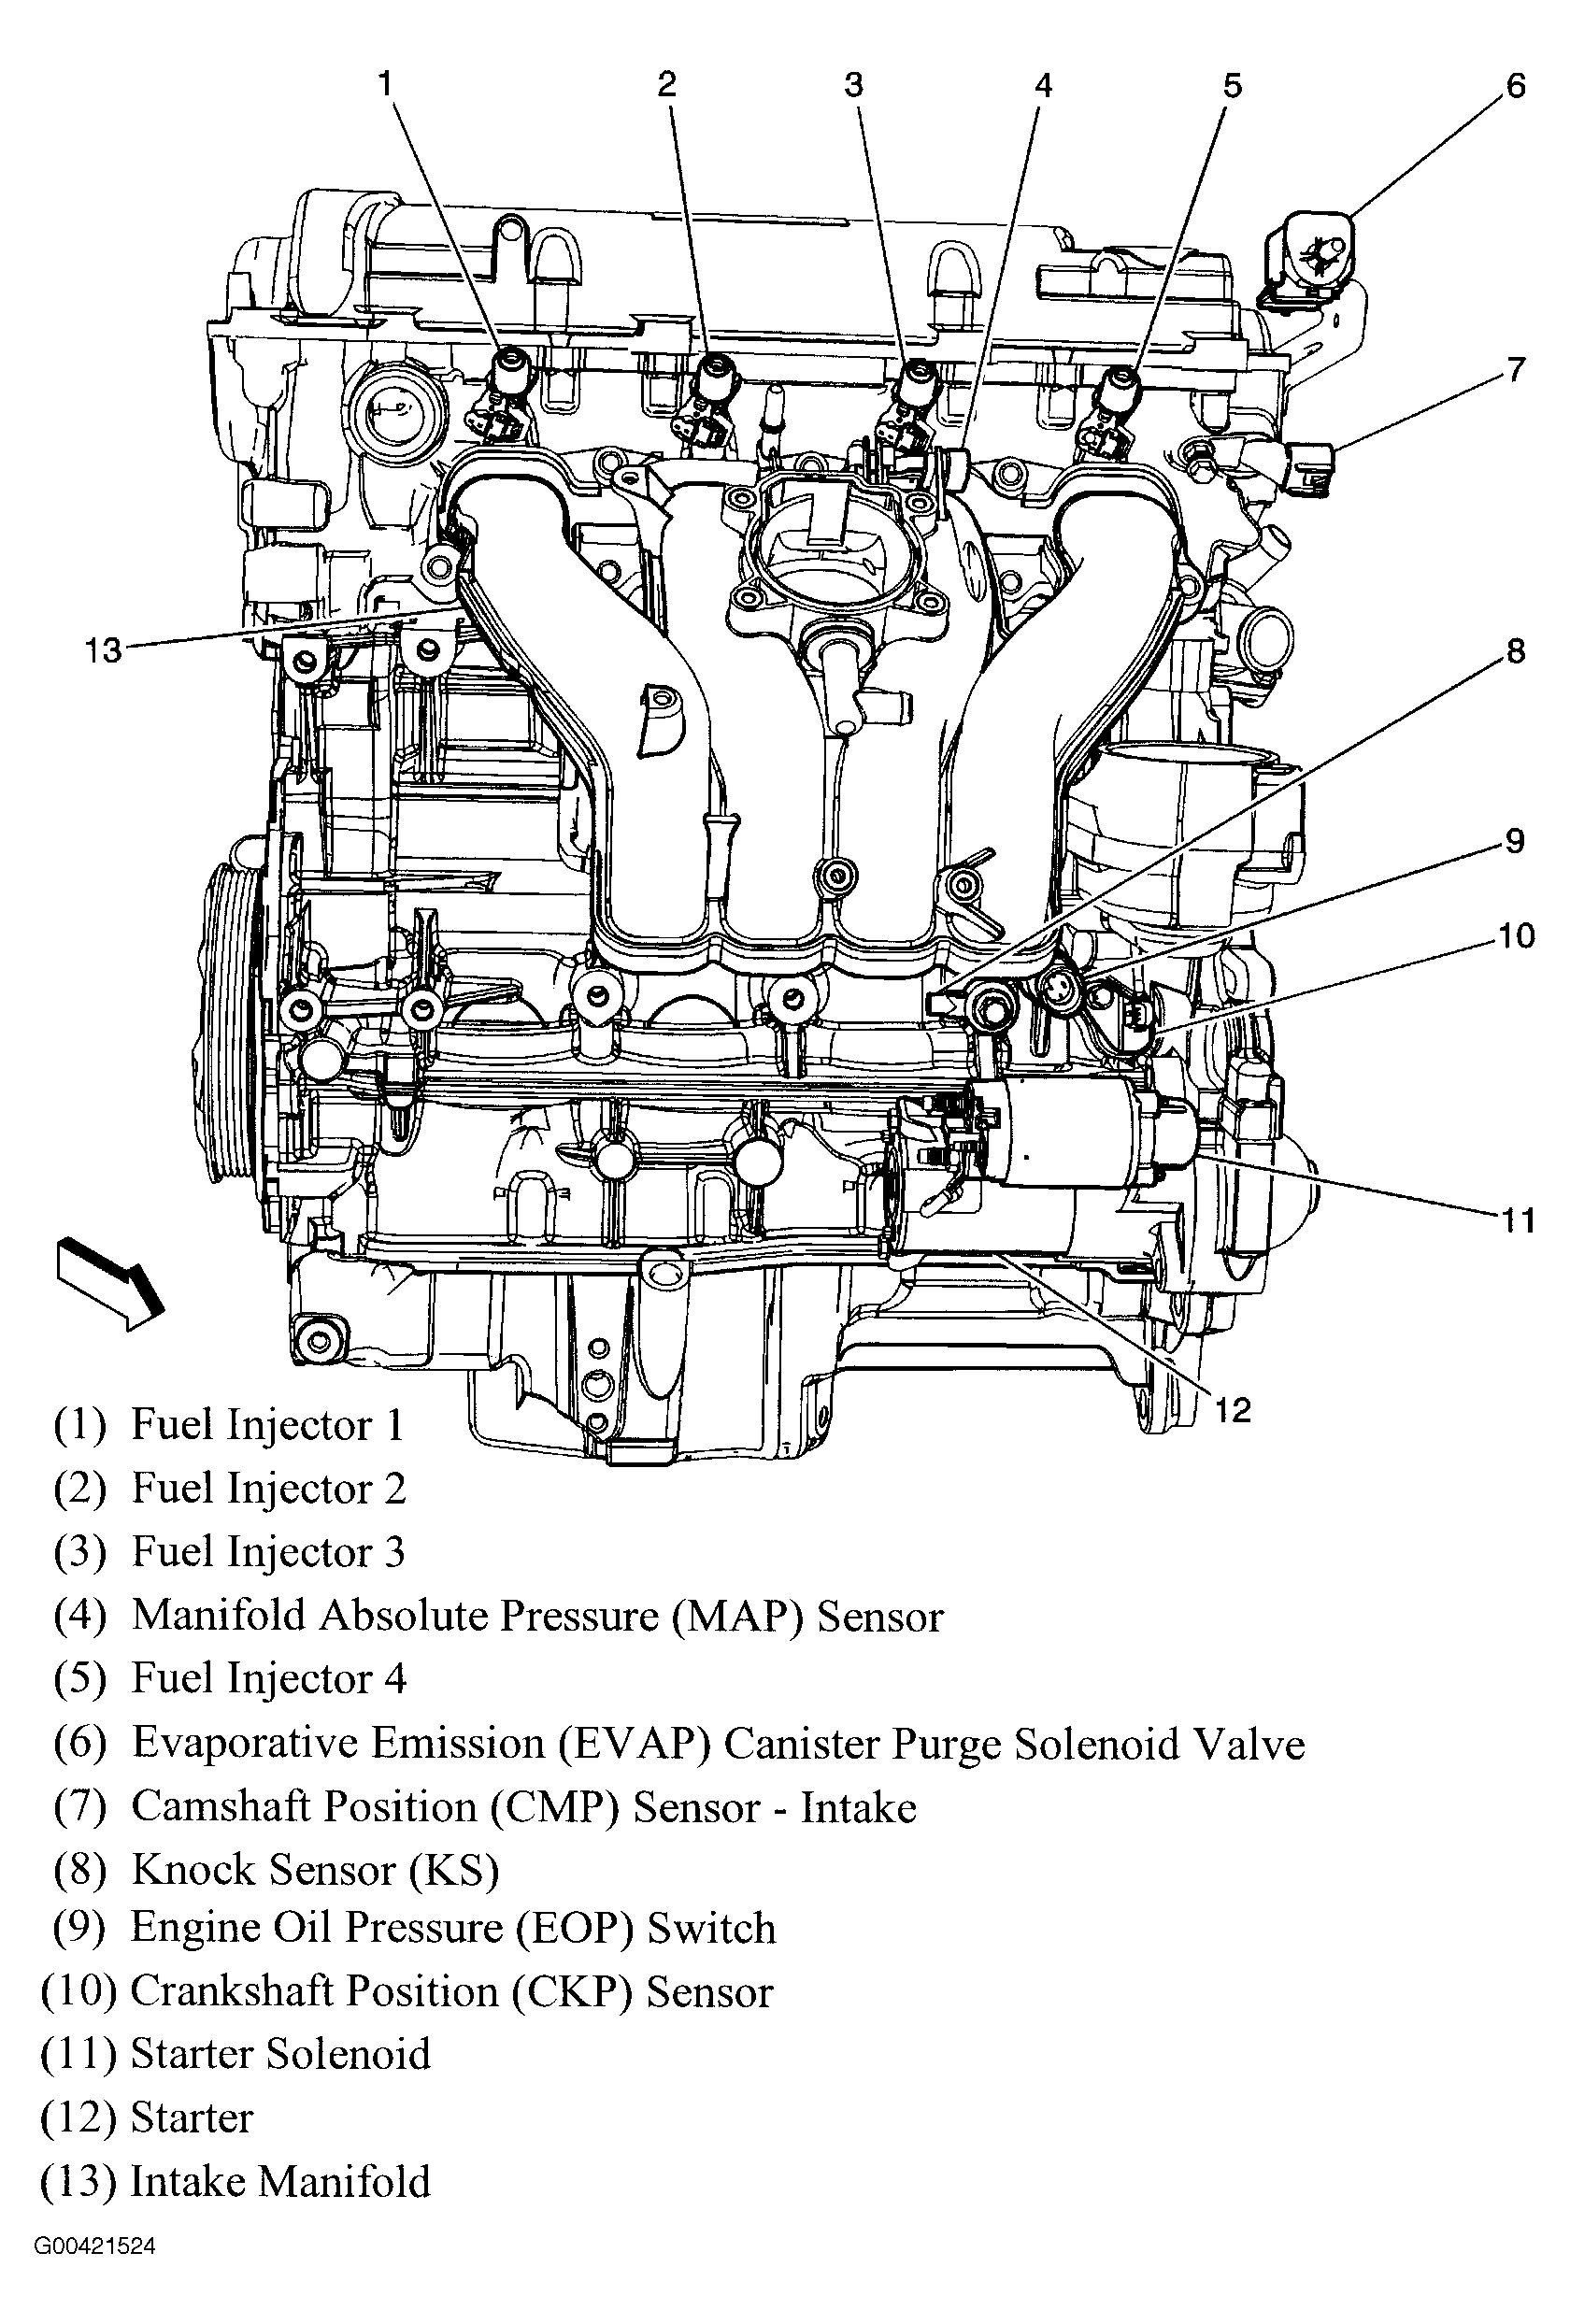 2009 Honda Civic Starter Replacement : honda, civic, starter, replacement, Chevy, Trailblazer, Engine, Diagram, Wiring, Export, Chase-realize, Chase-realize.congressosifo2018.it